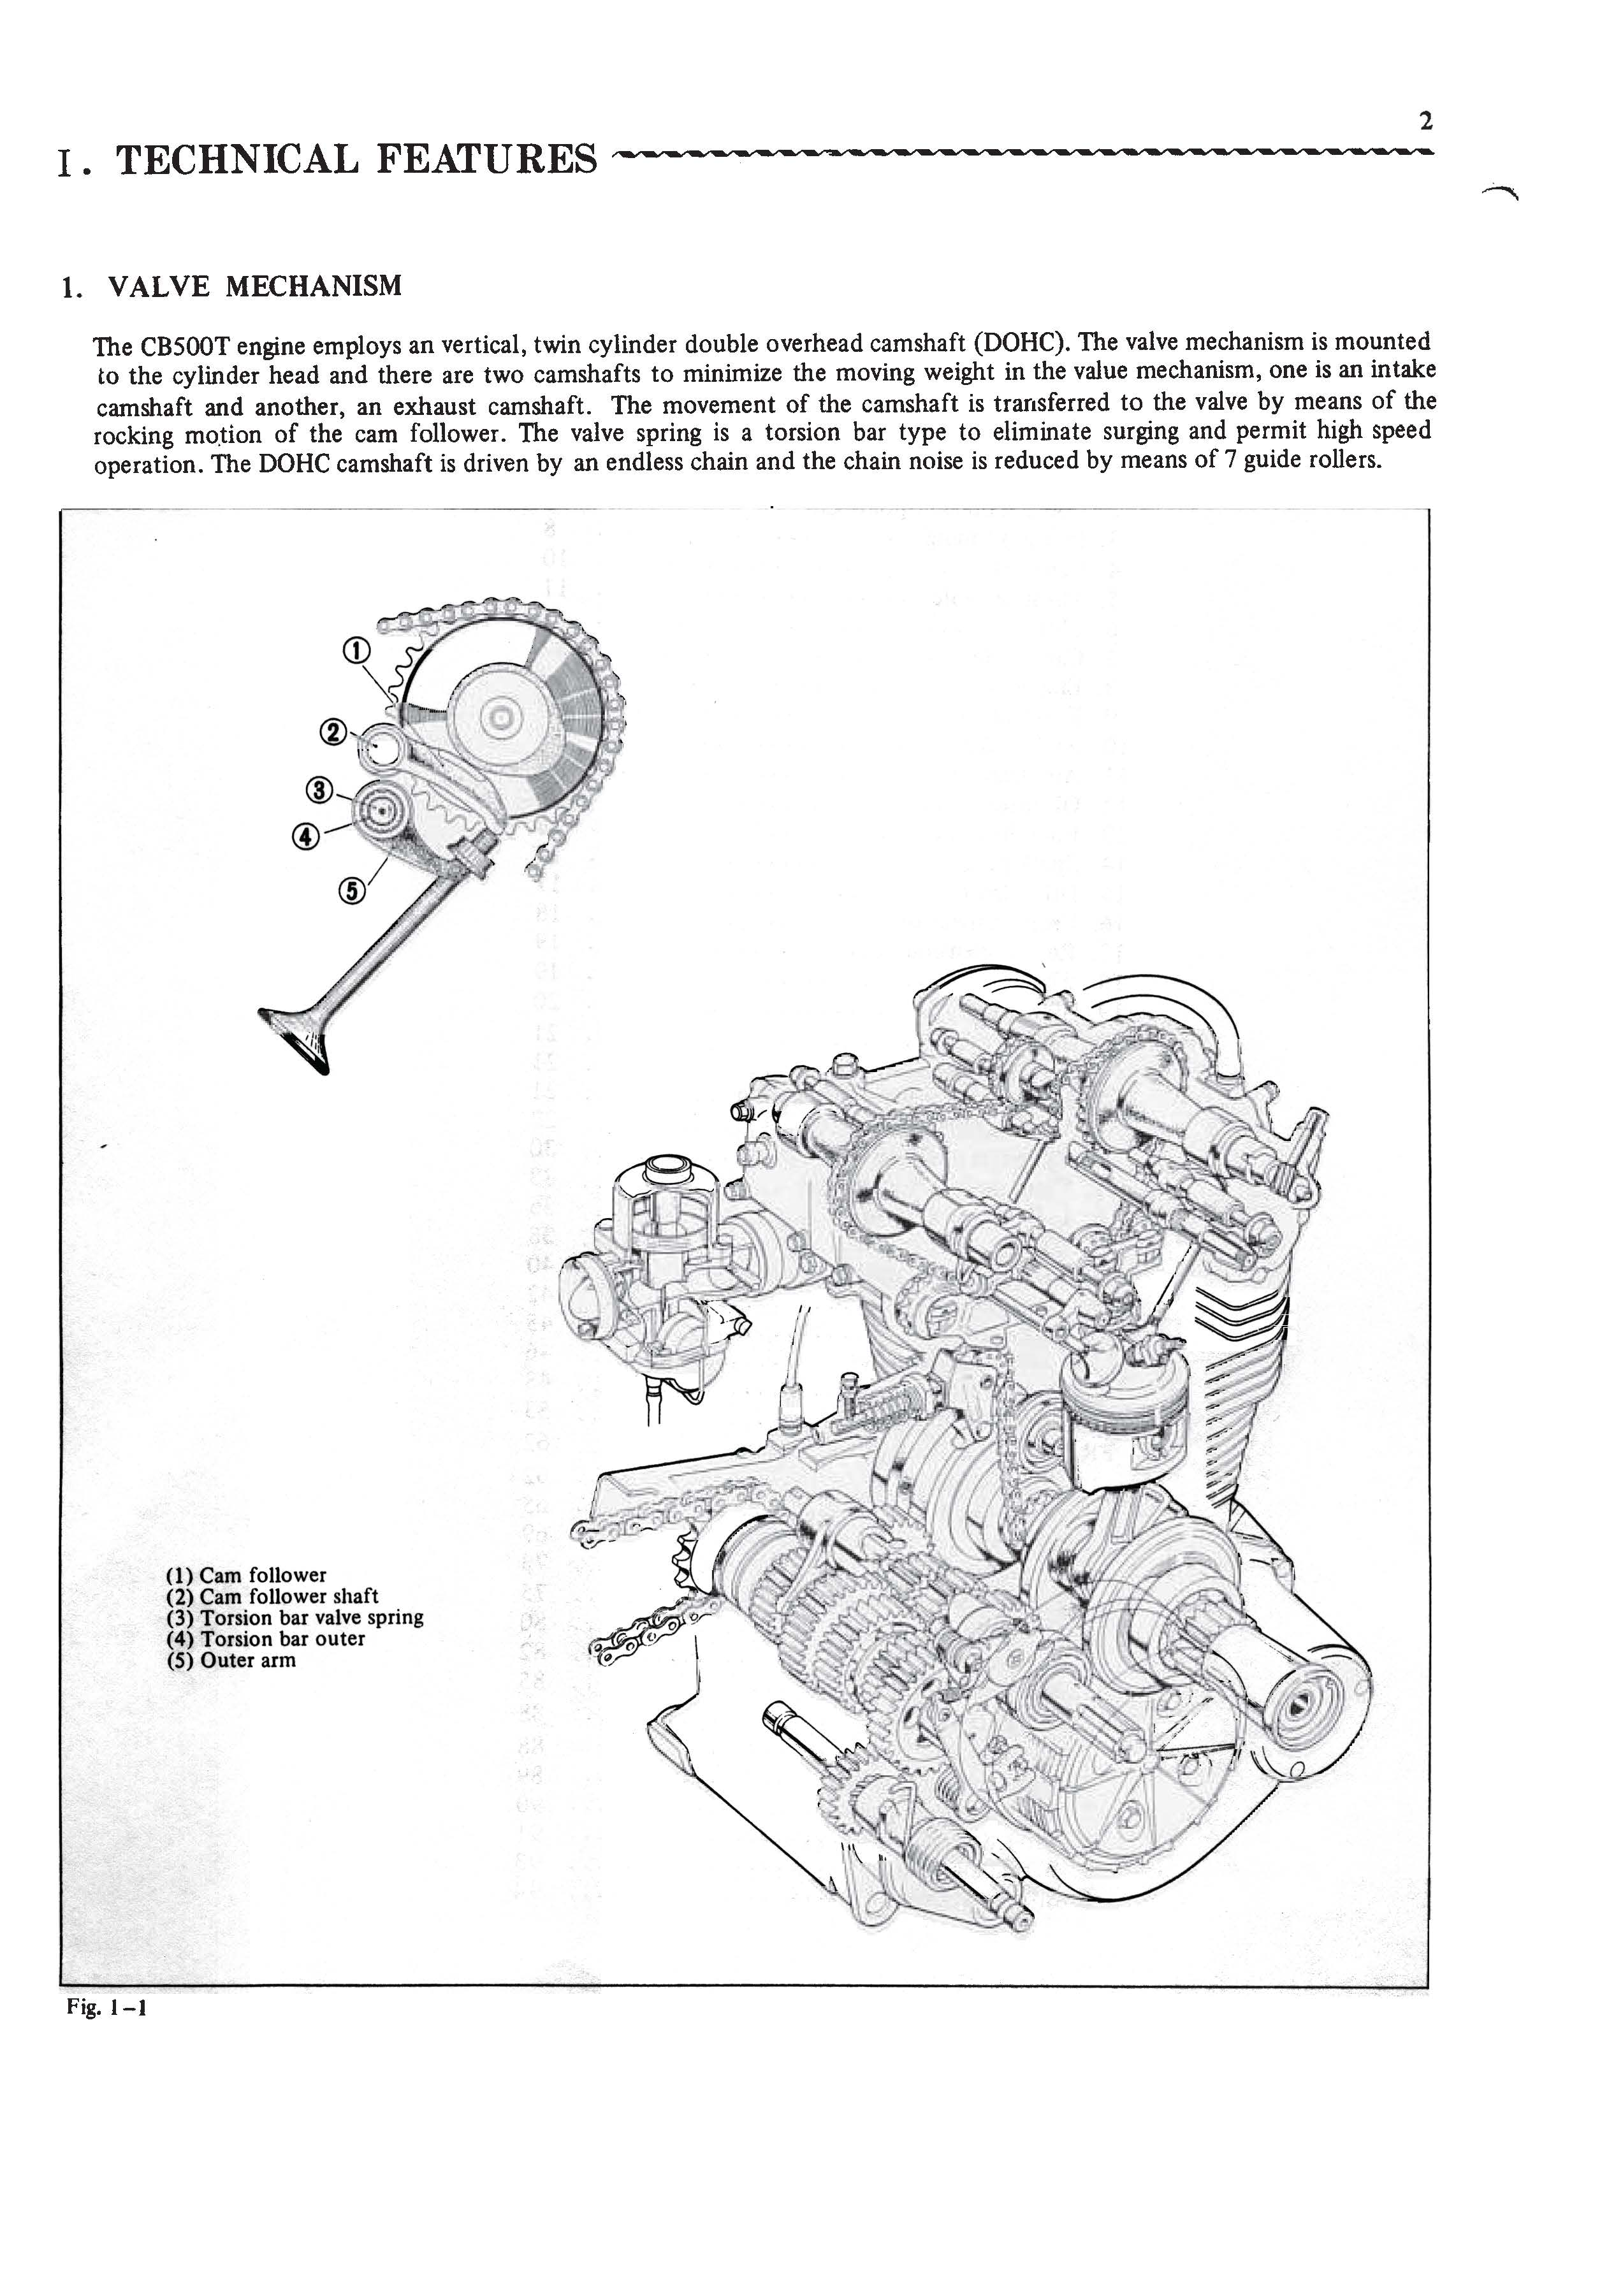 workshopmanual cb500t 08122019 1821a